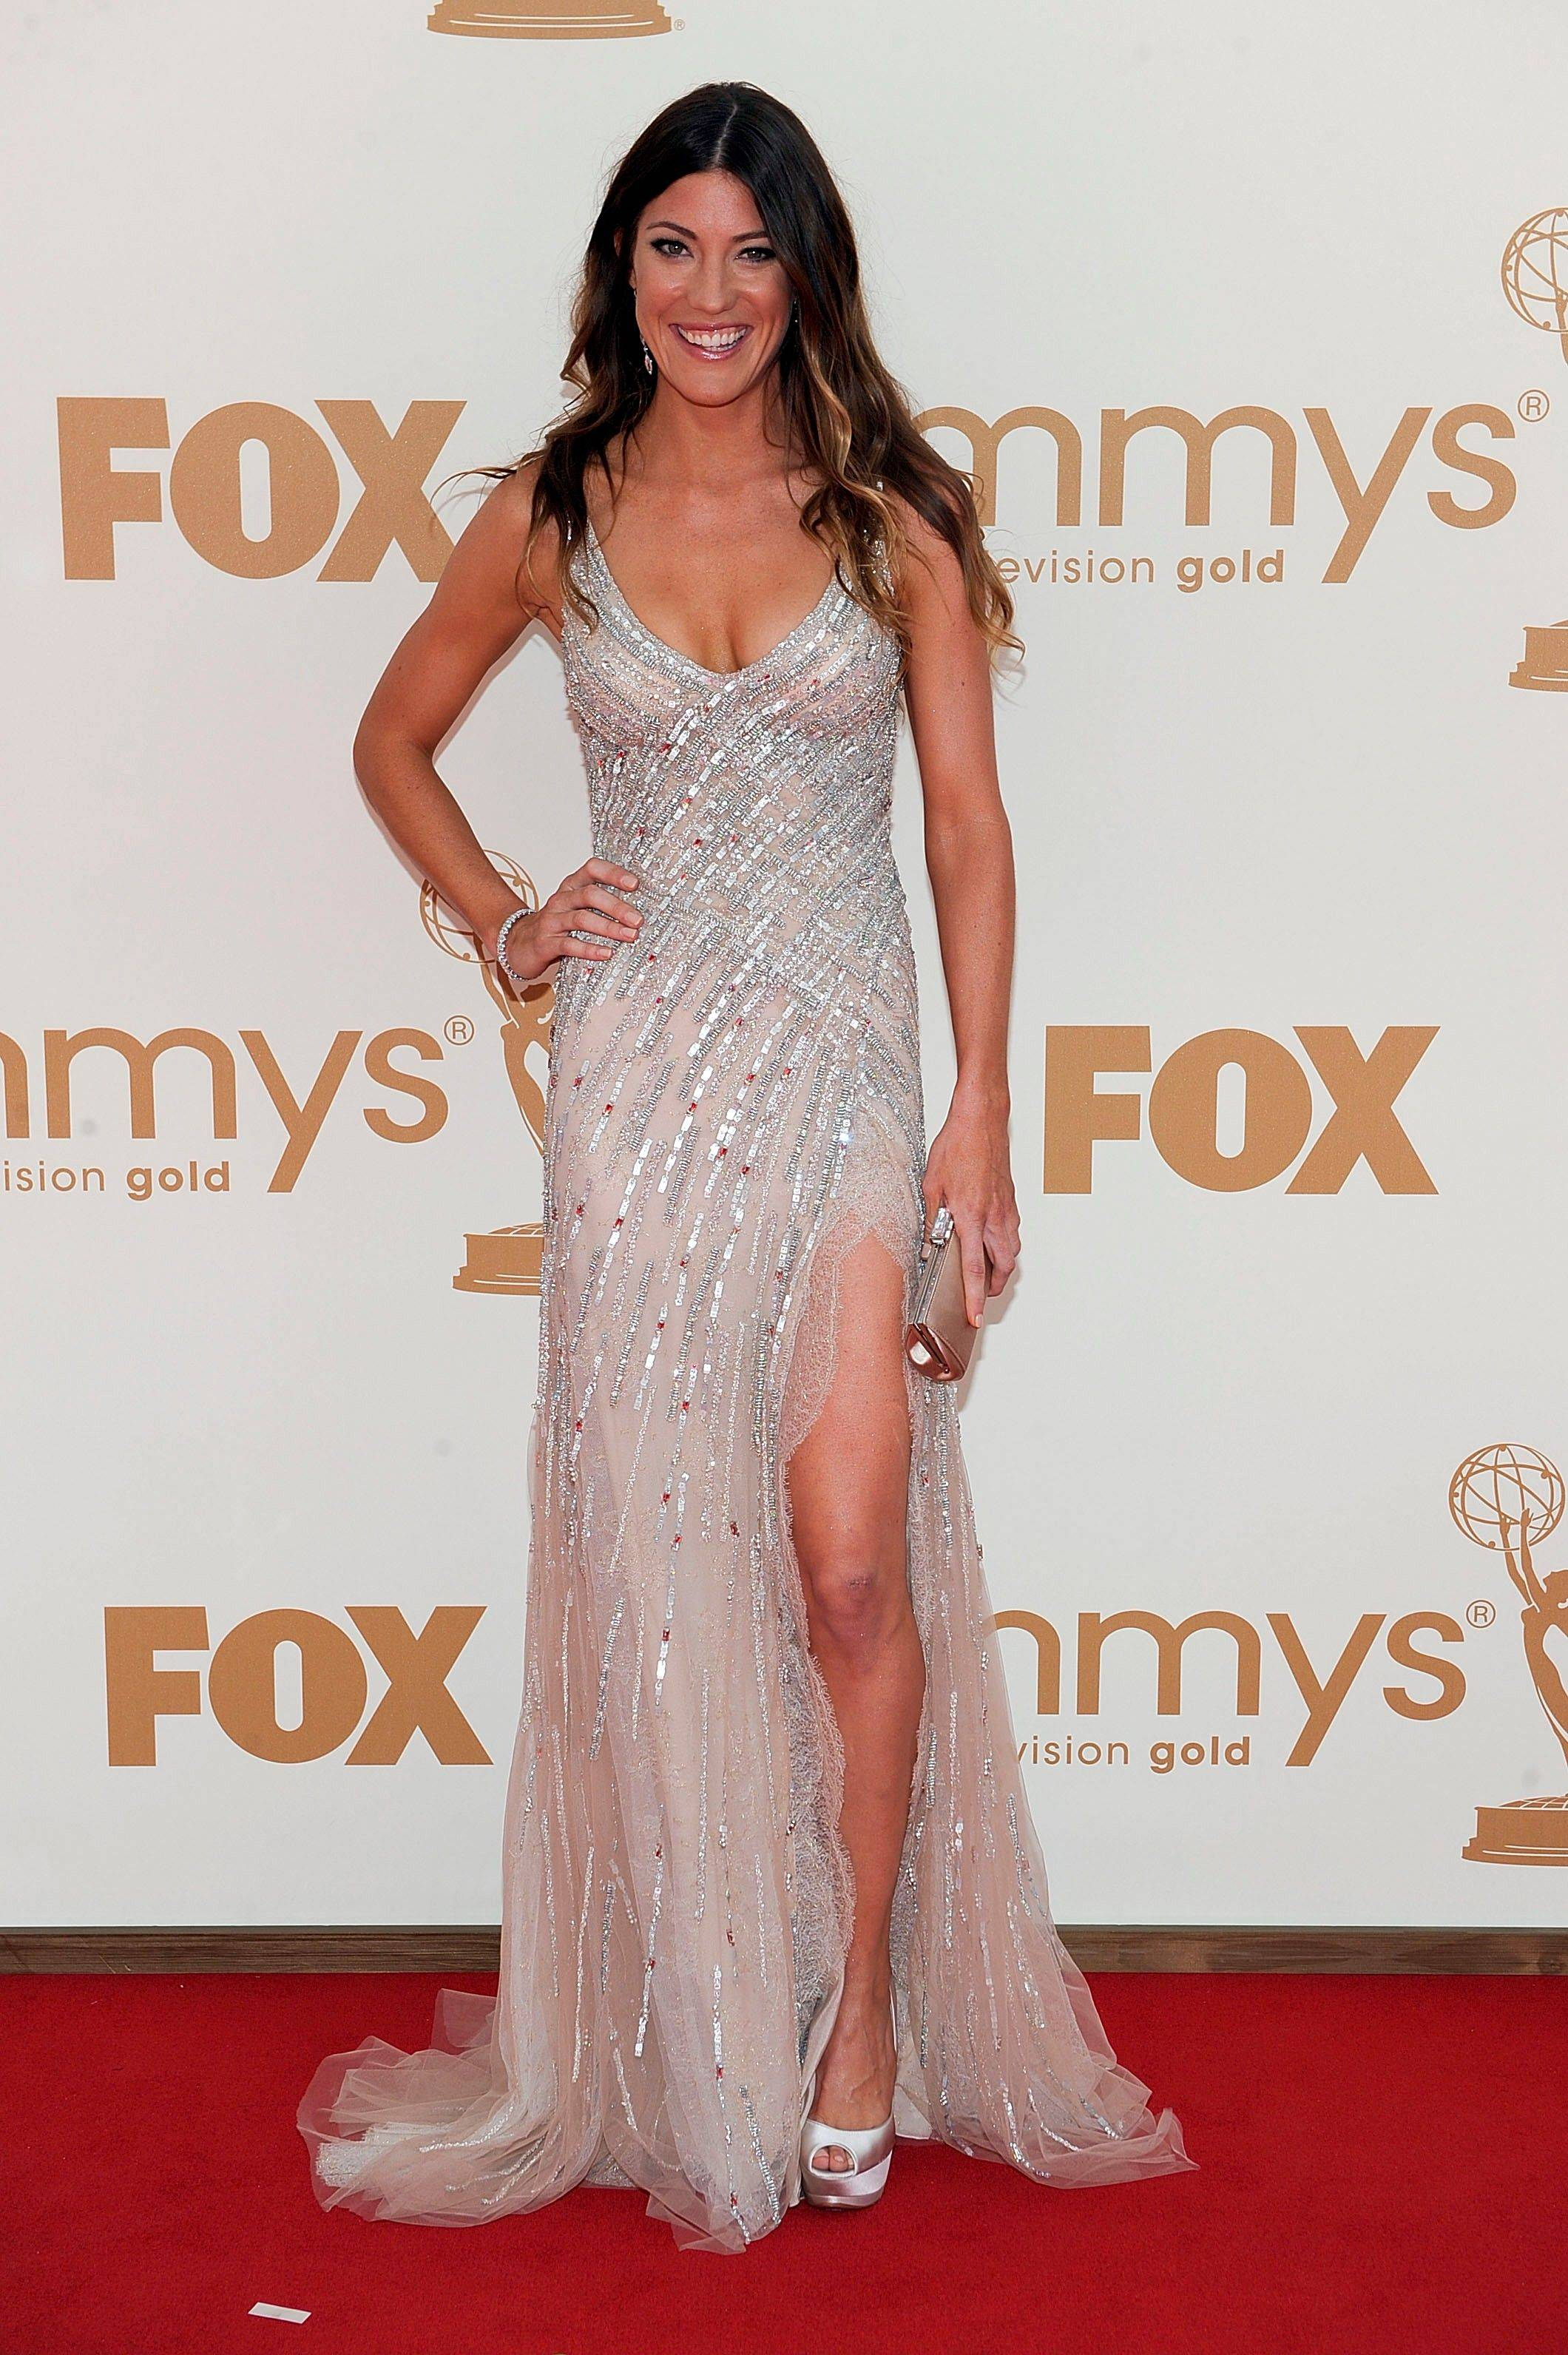 """Dexter"" actress Jennifer Carpenter stayed on trend with this glittery number."